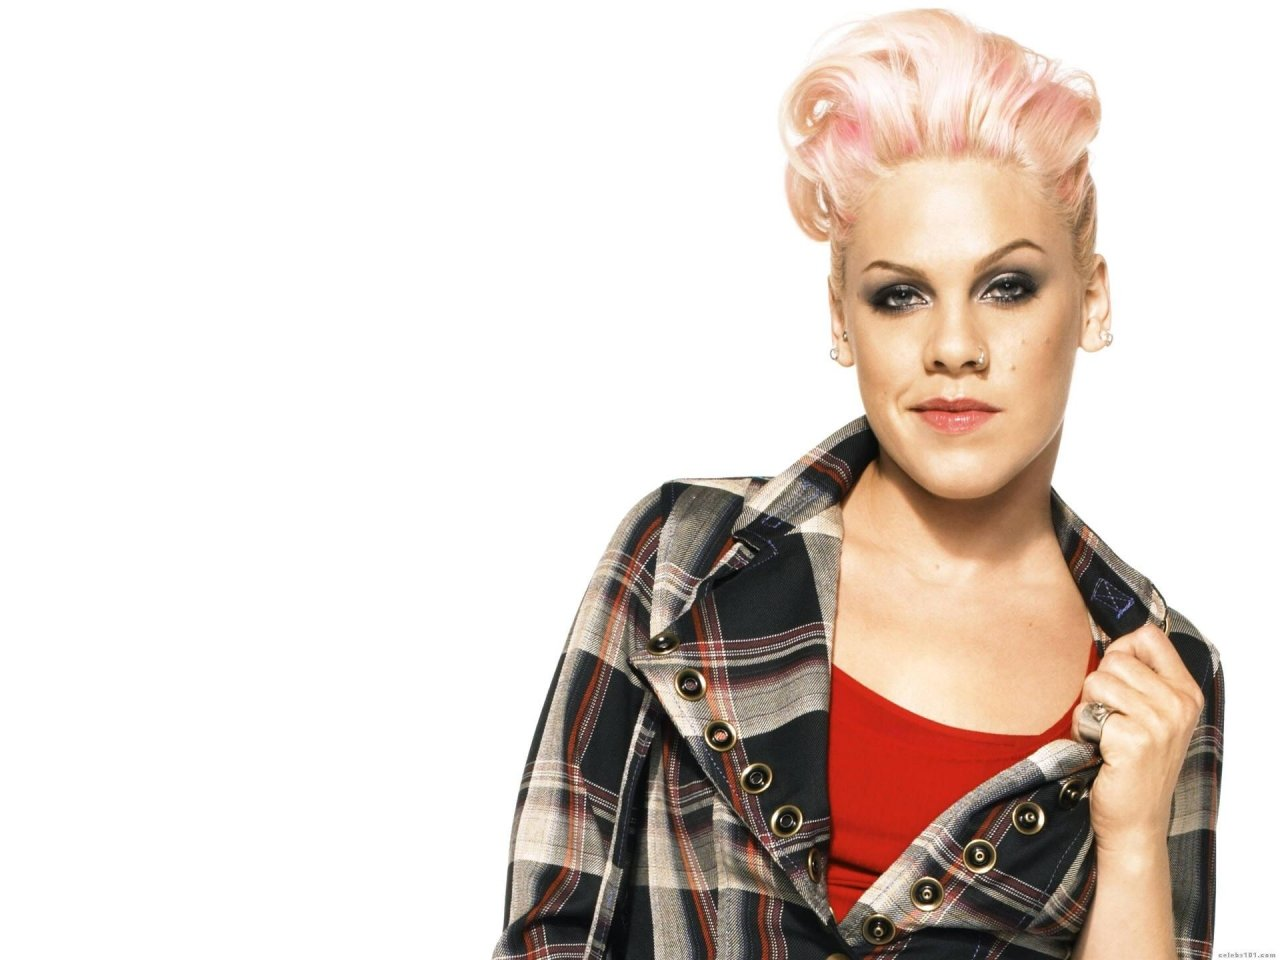 Pink singer alecia moore short hair newhairstylesformen2014 com